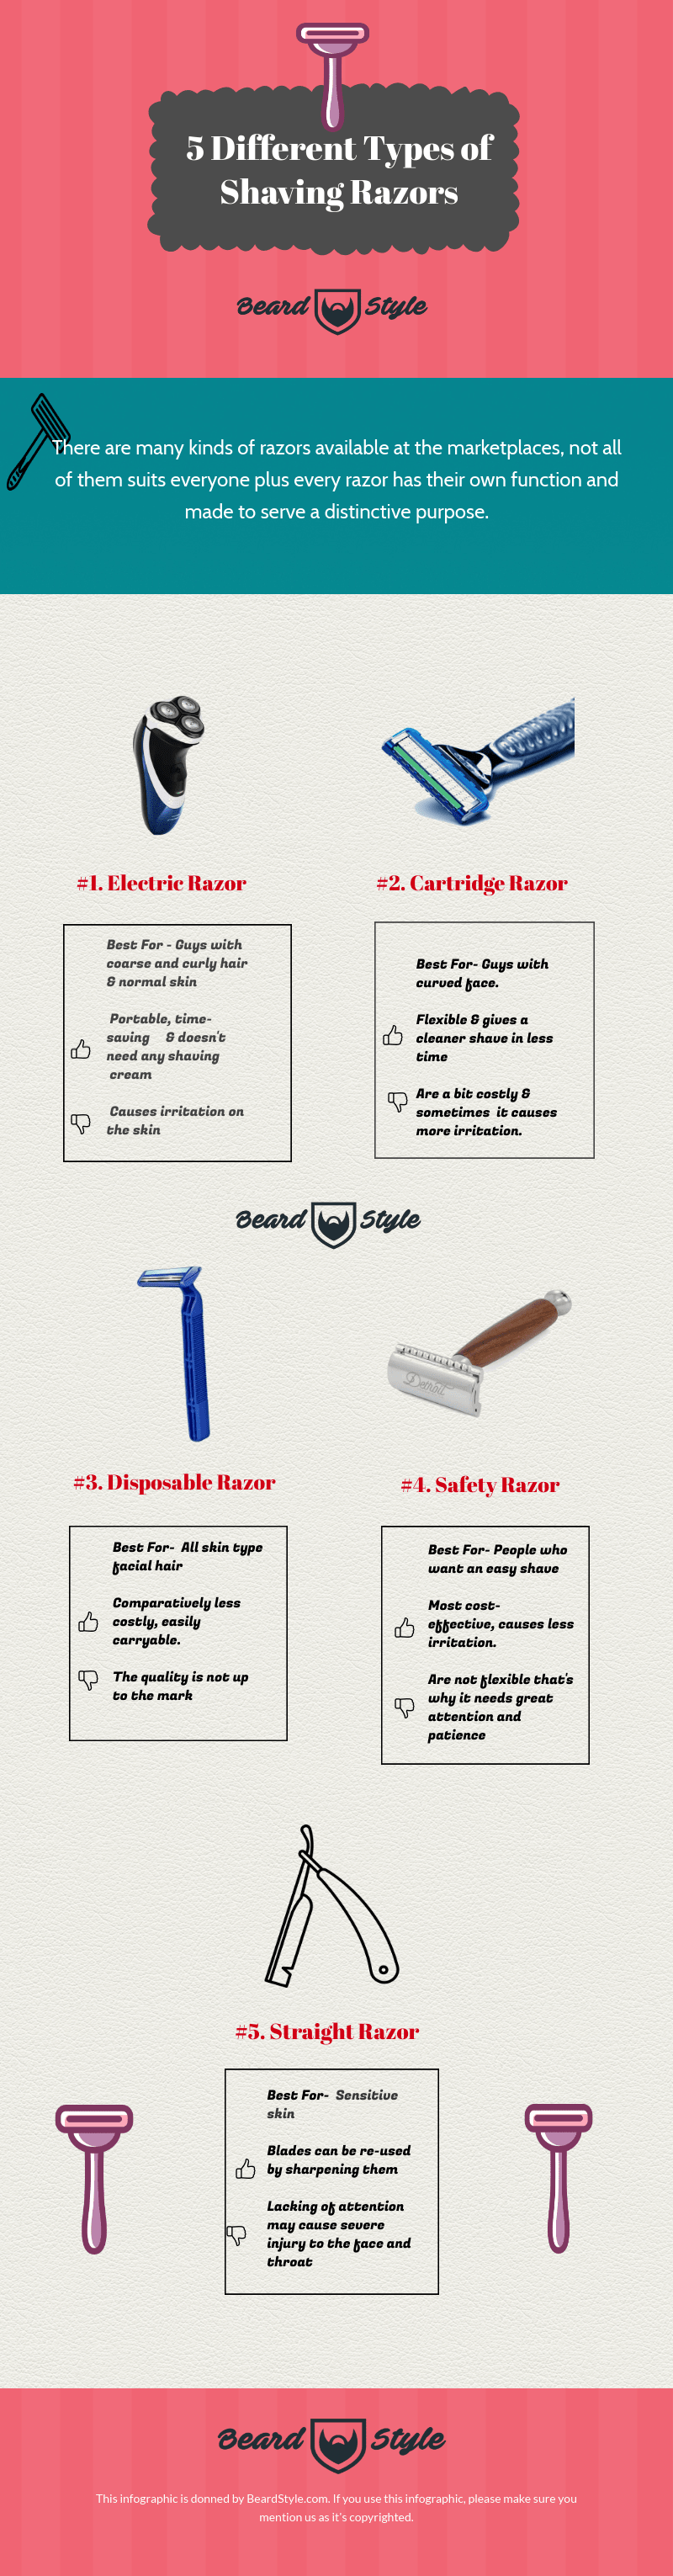 5 Different Types of Razors: Which One Is Suitable for You?